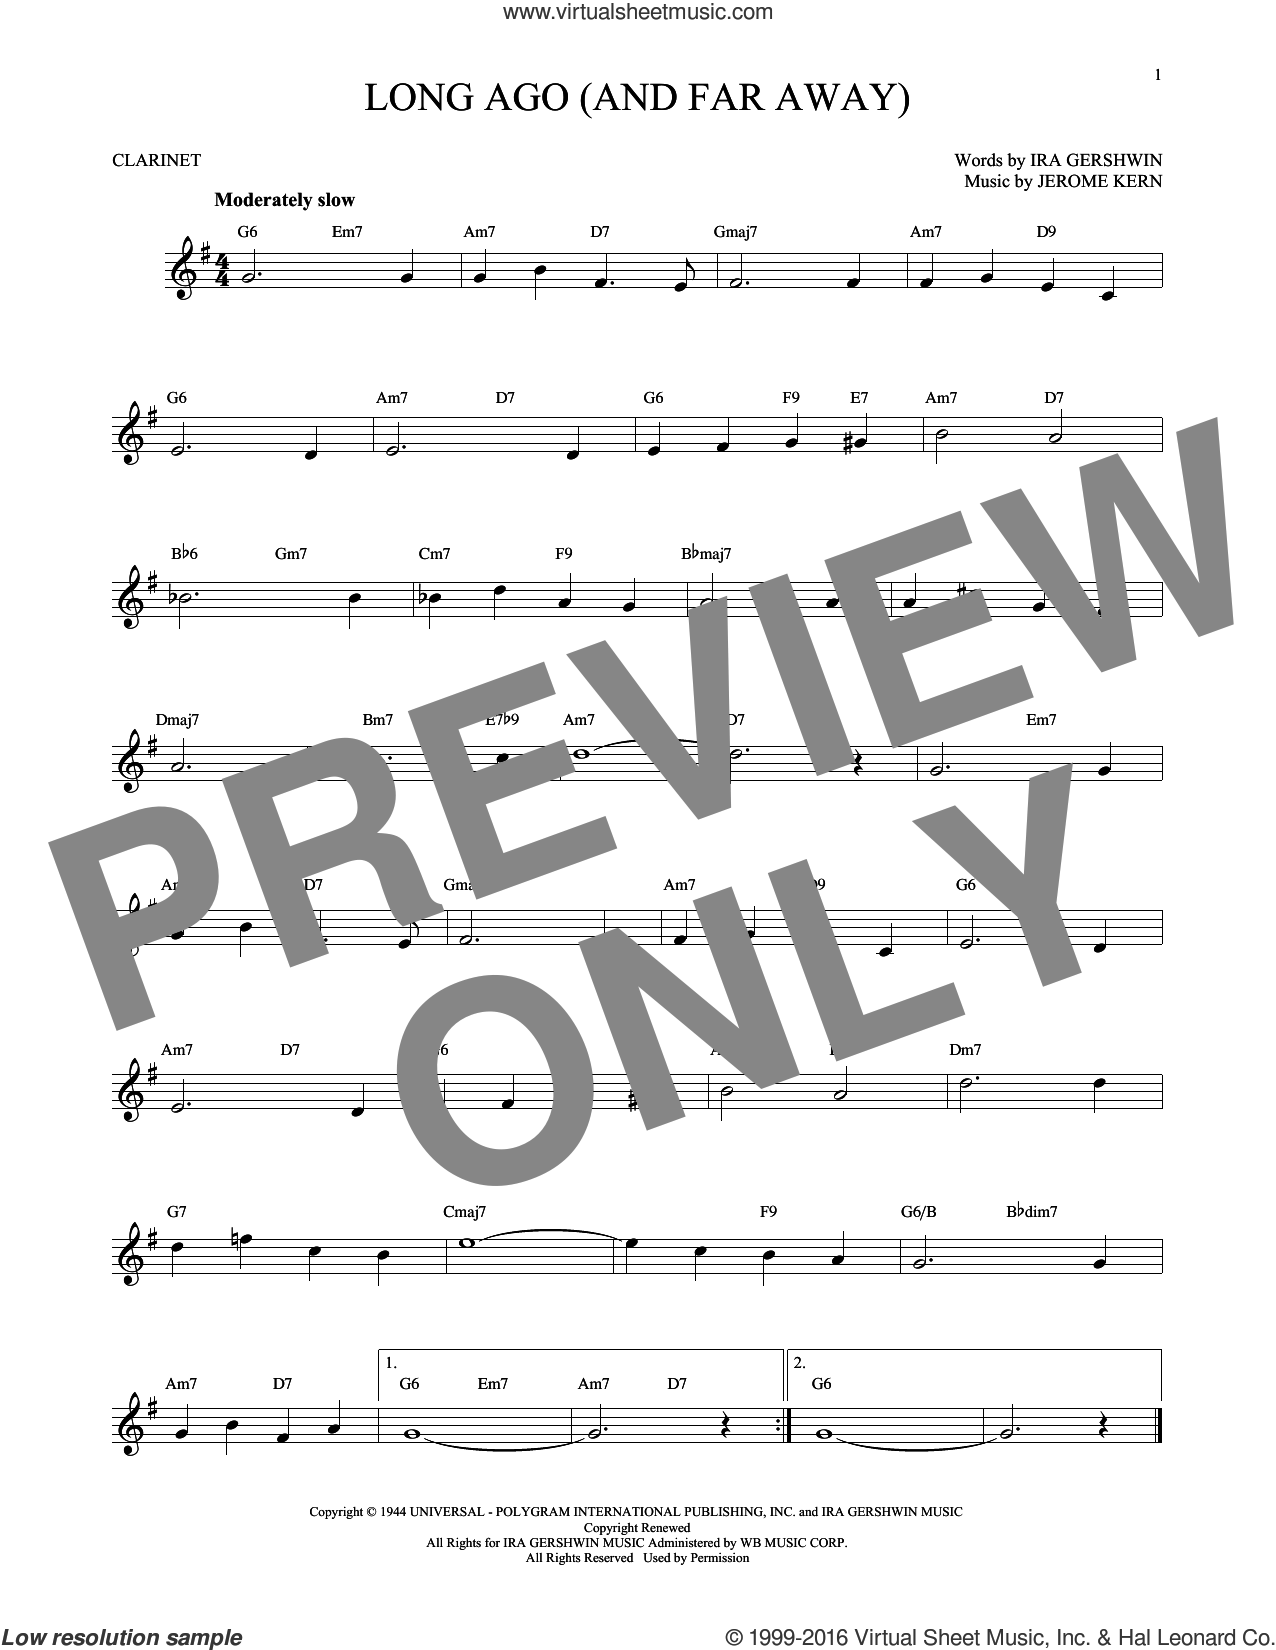 Long Ago (And Far Away) sheet music for clarinet solo by Ira Gershwin and Jerome Kern, intermediate skill level